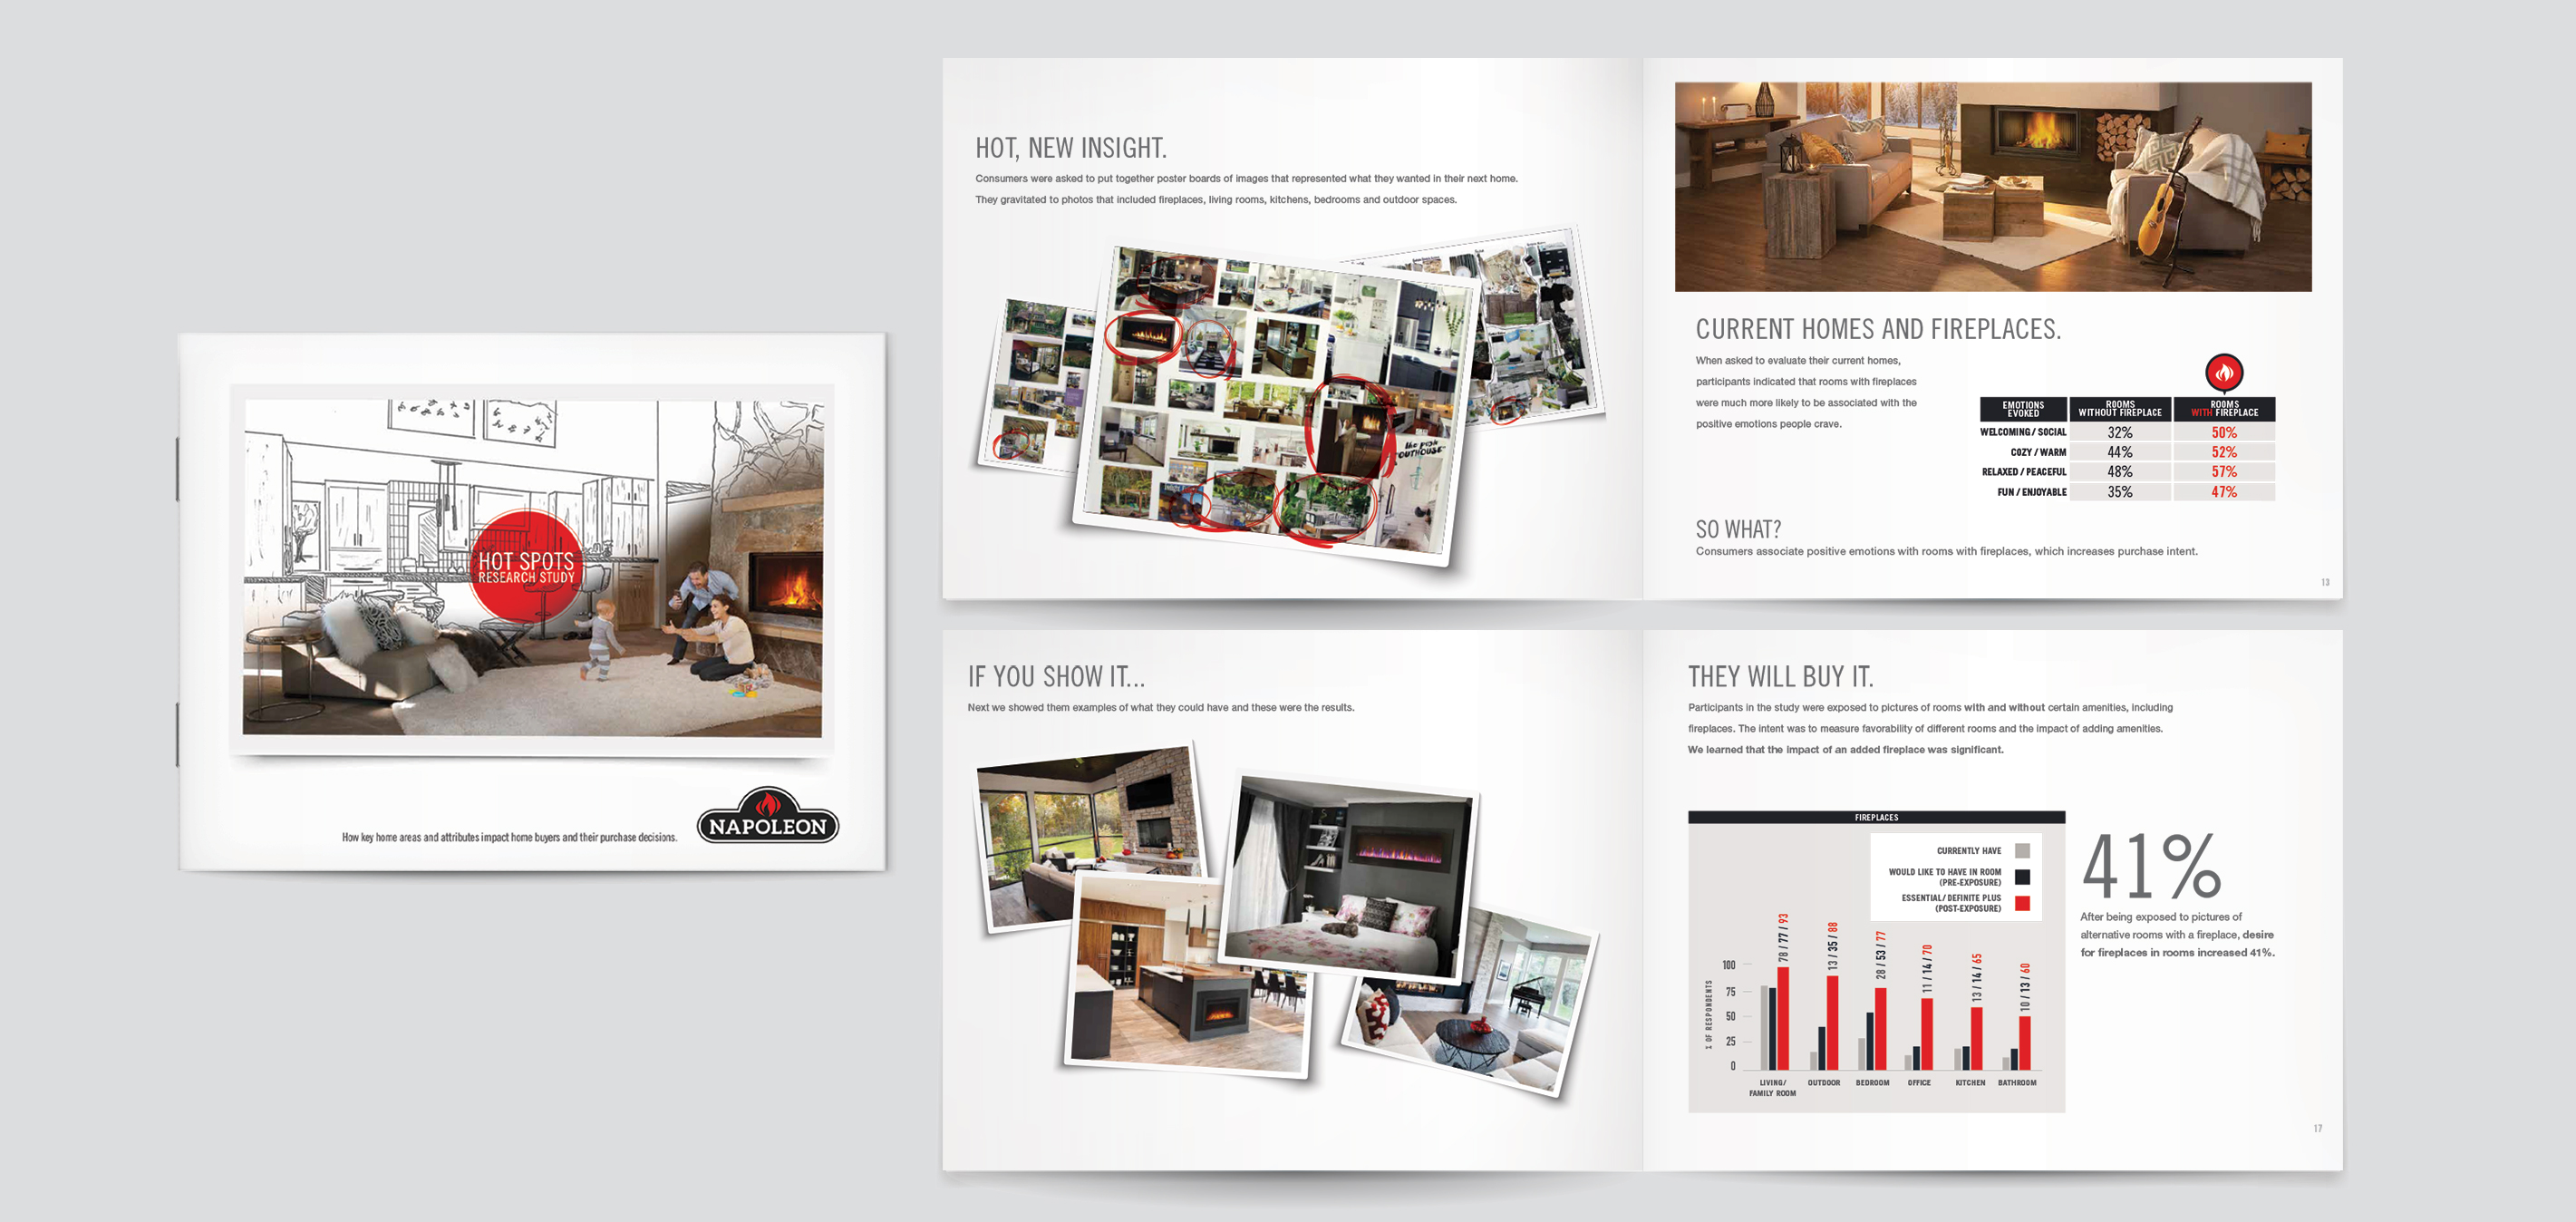 Napoleon fireplaces Hot Spots campaign consumer research study spread.